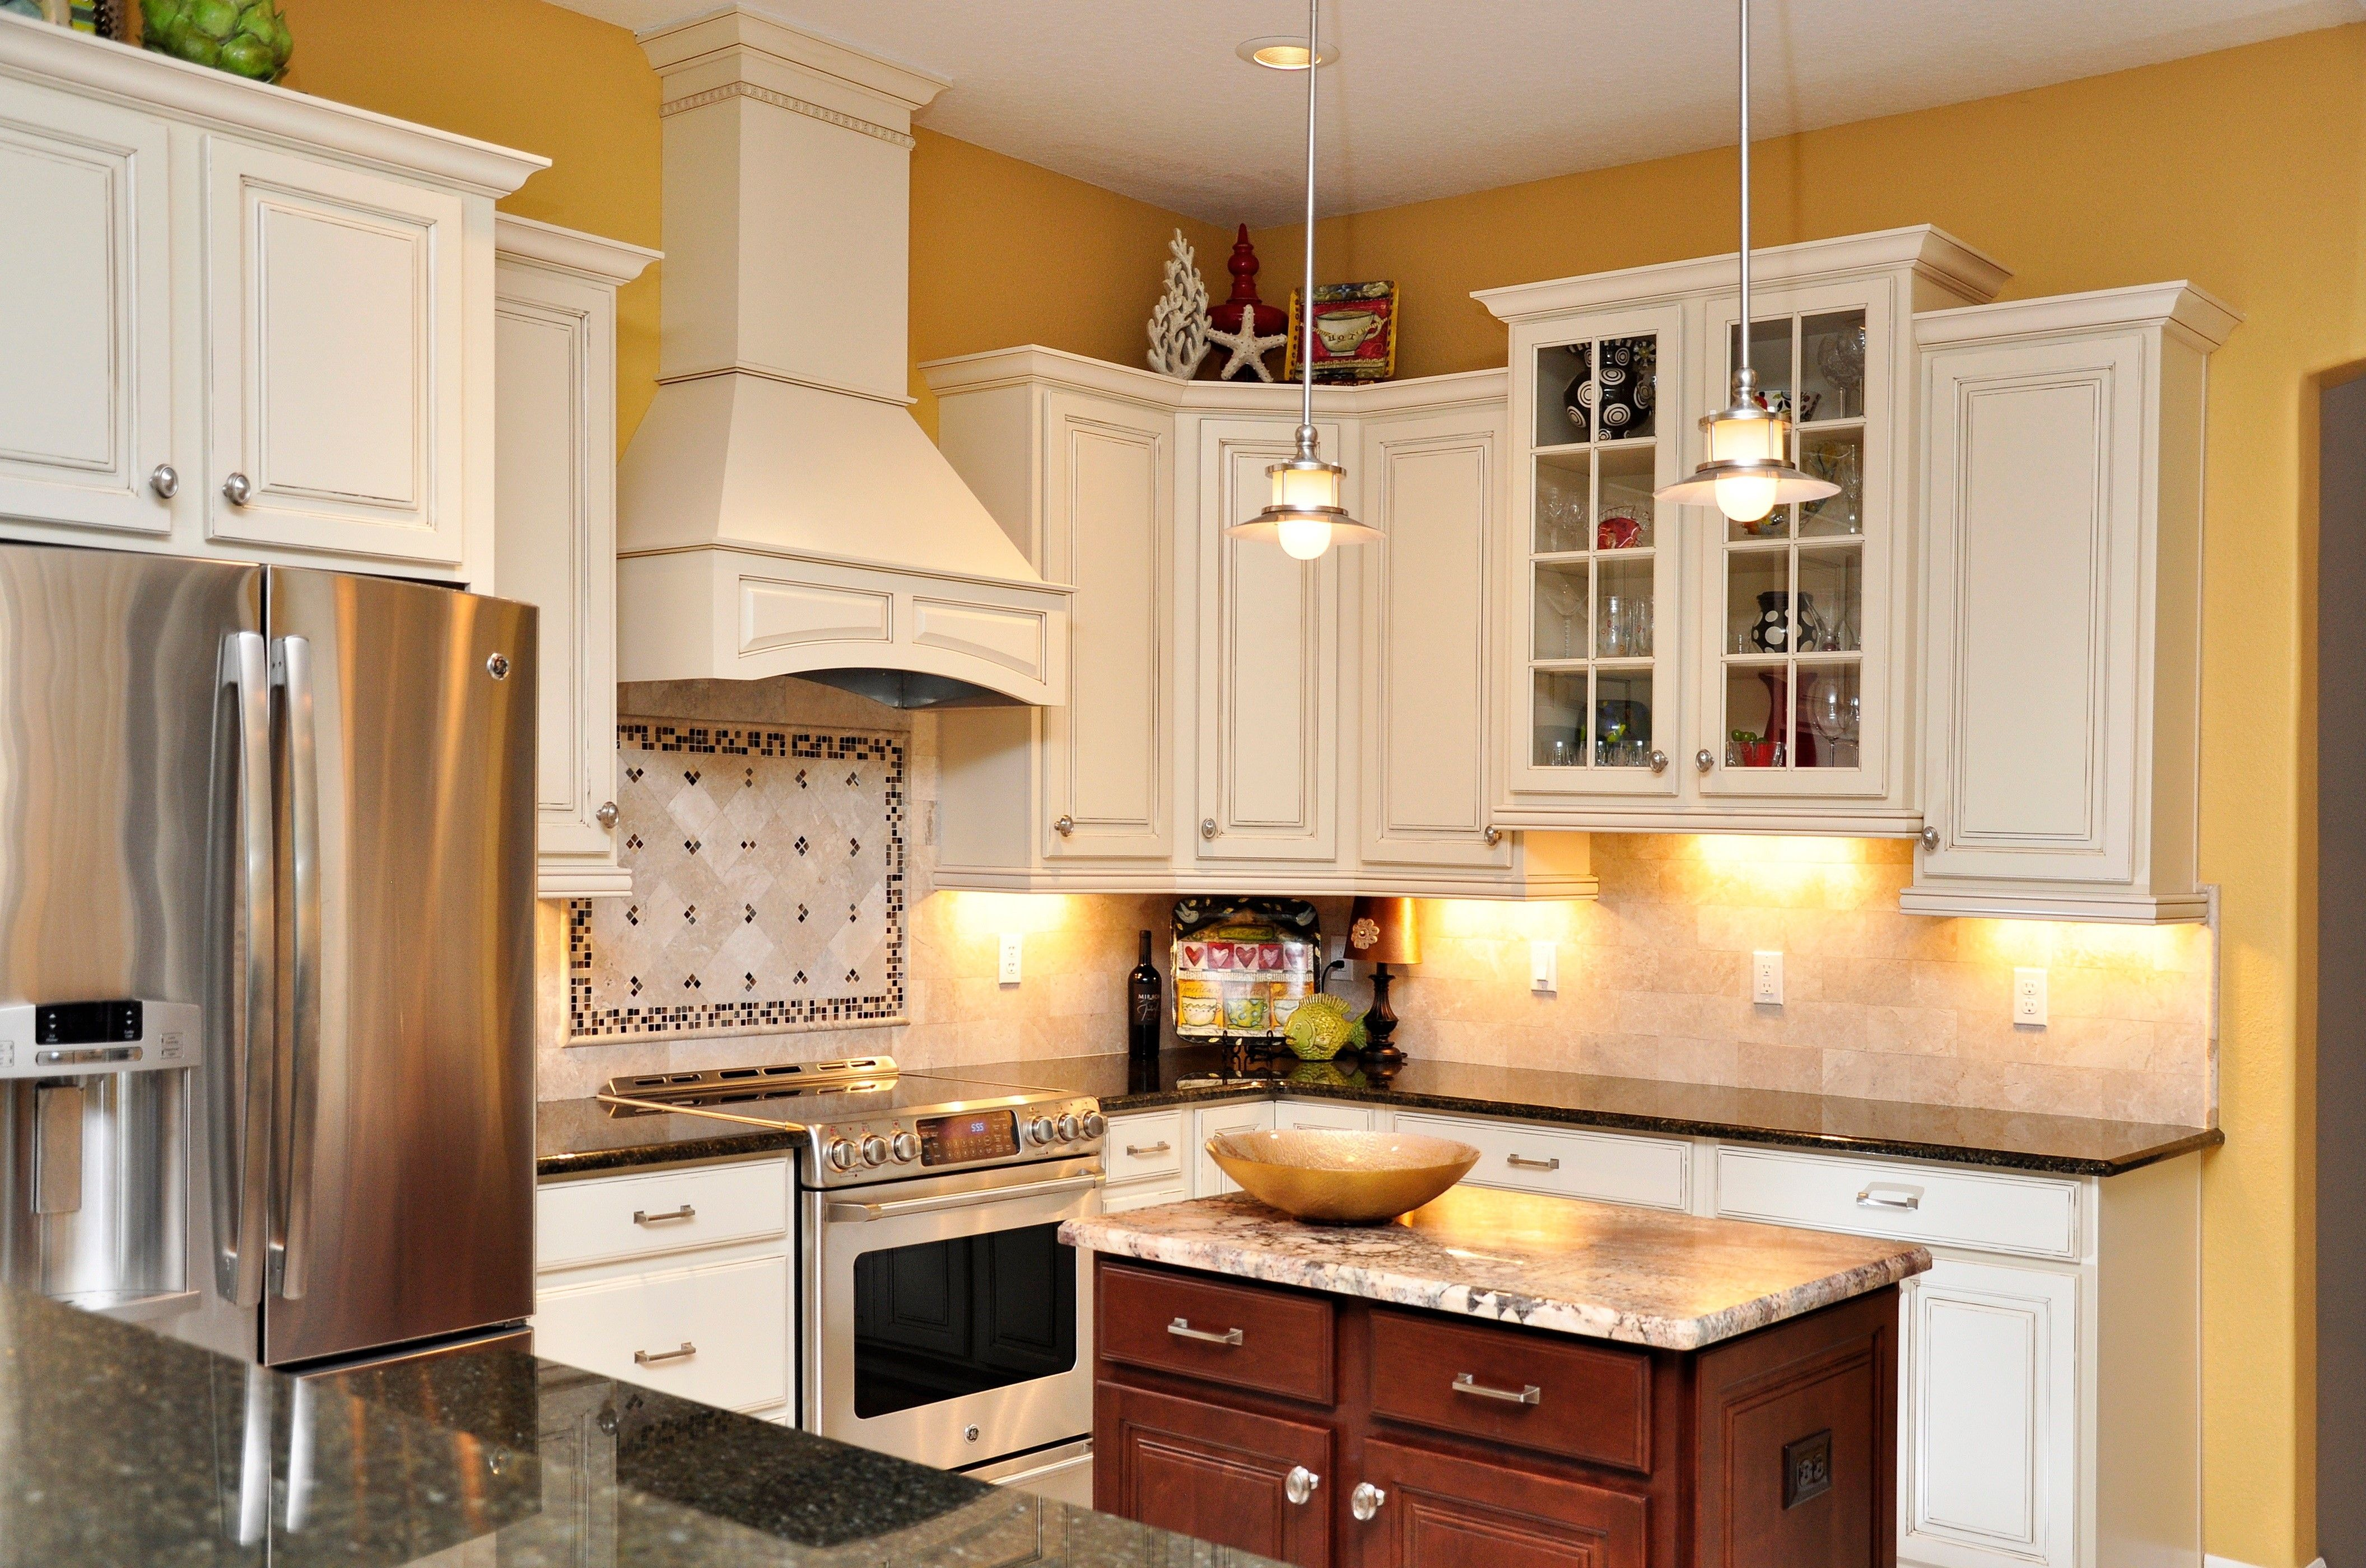 White Cabinets Dark Granite Stainless Steel Appliances Custom Tile Backslash Yellow Kitchen By The Best Cu Kitchen Remodel Yellow Kitchen Kitchen Colors